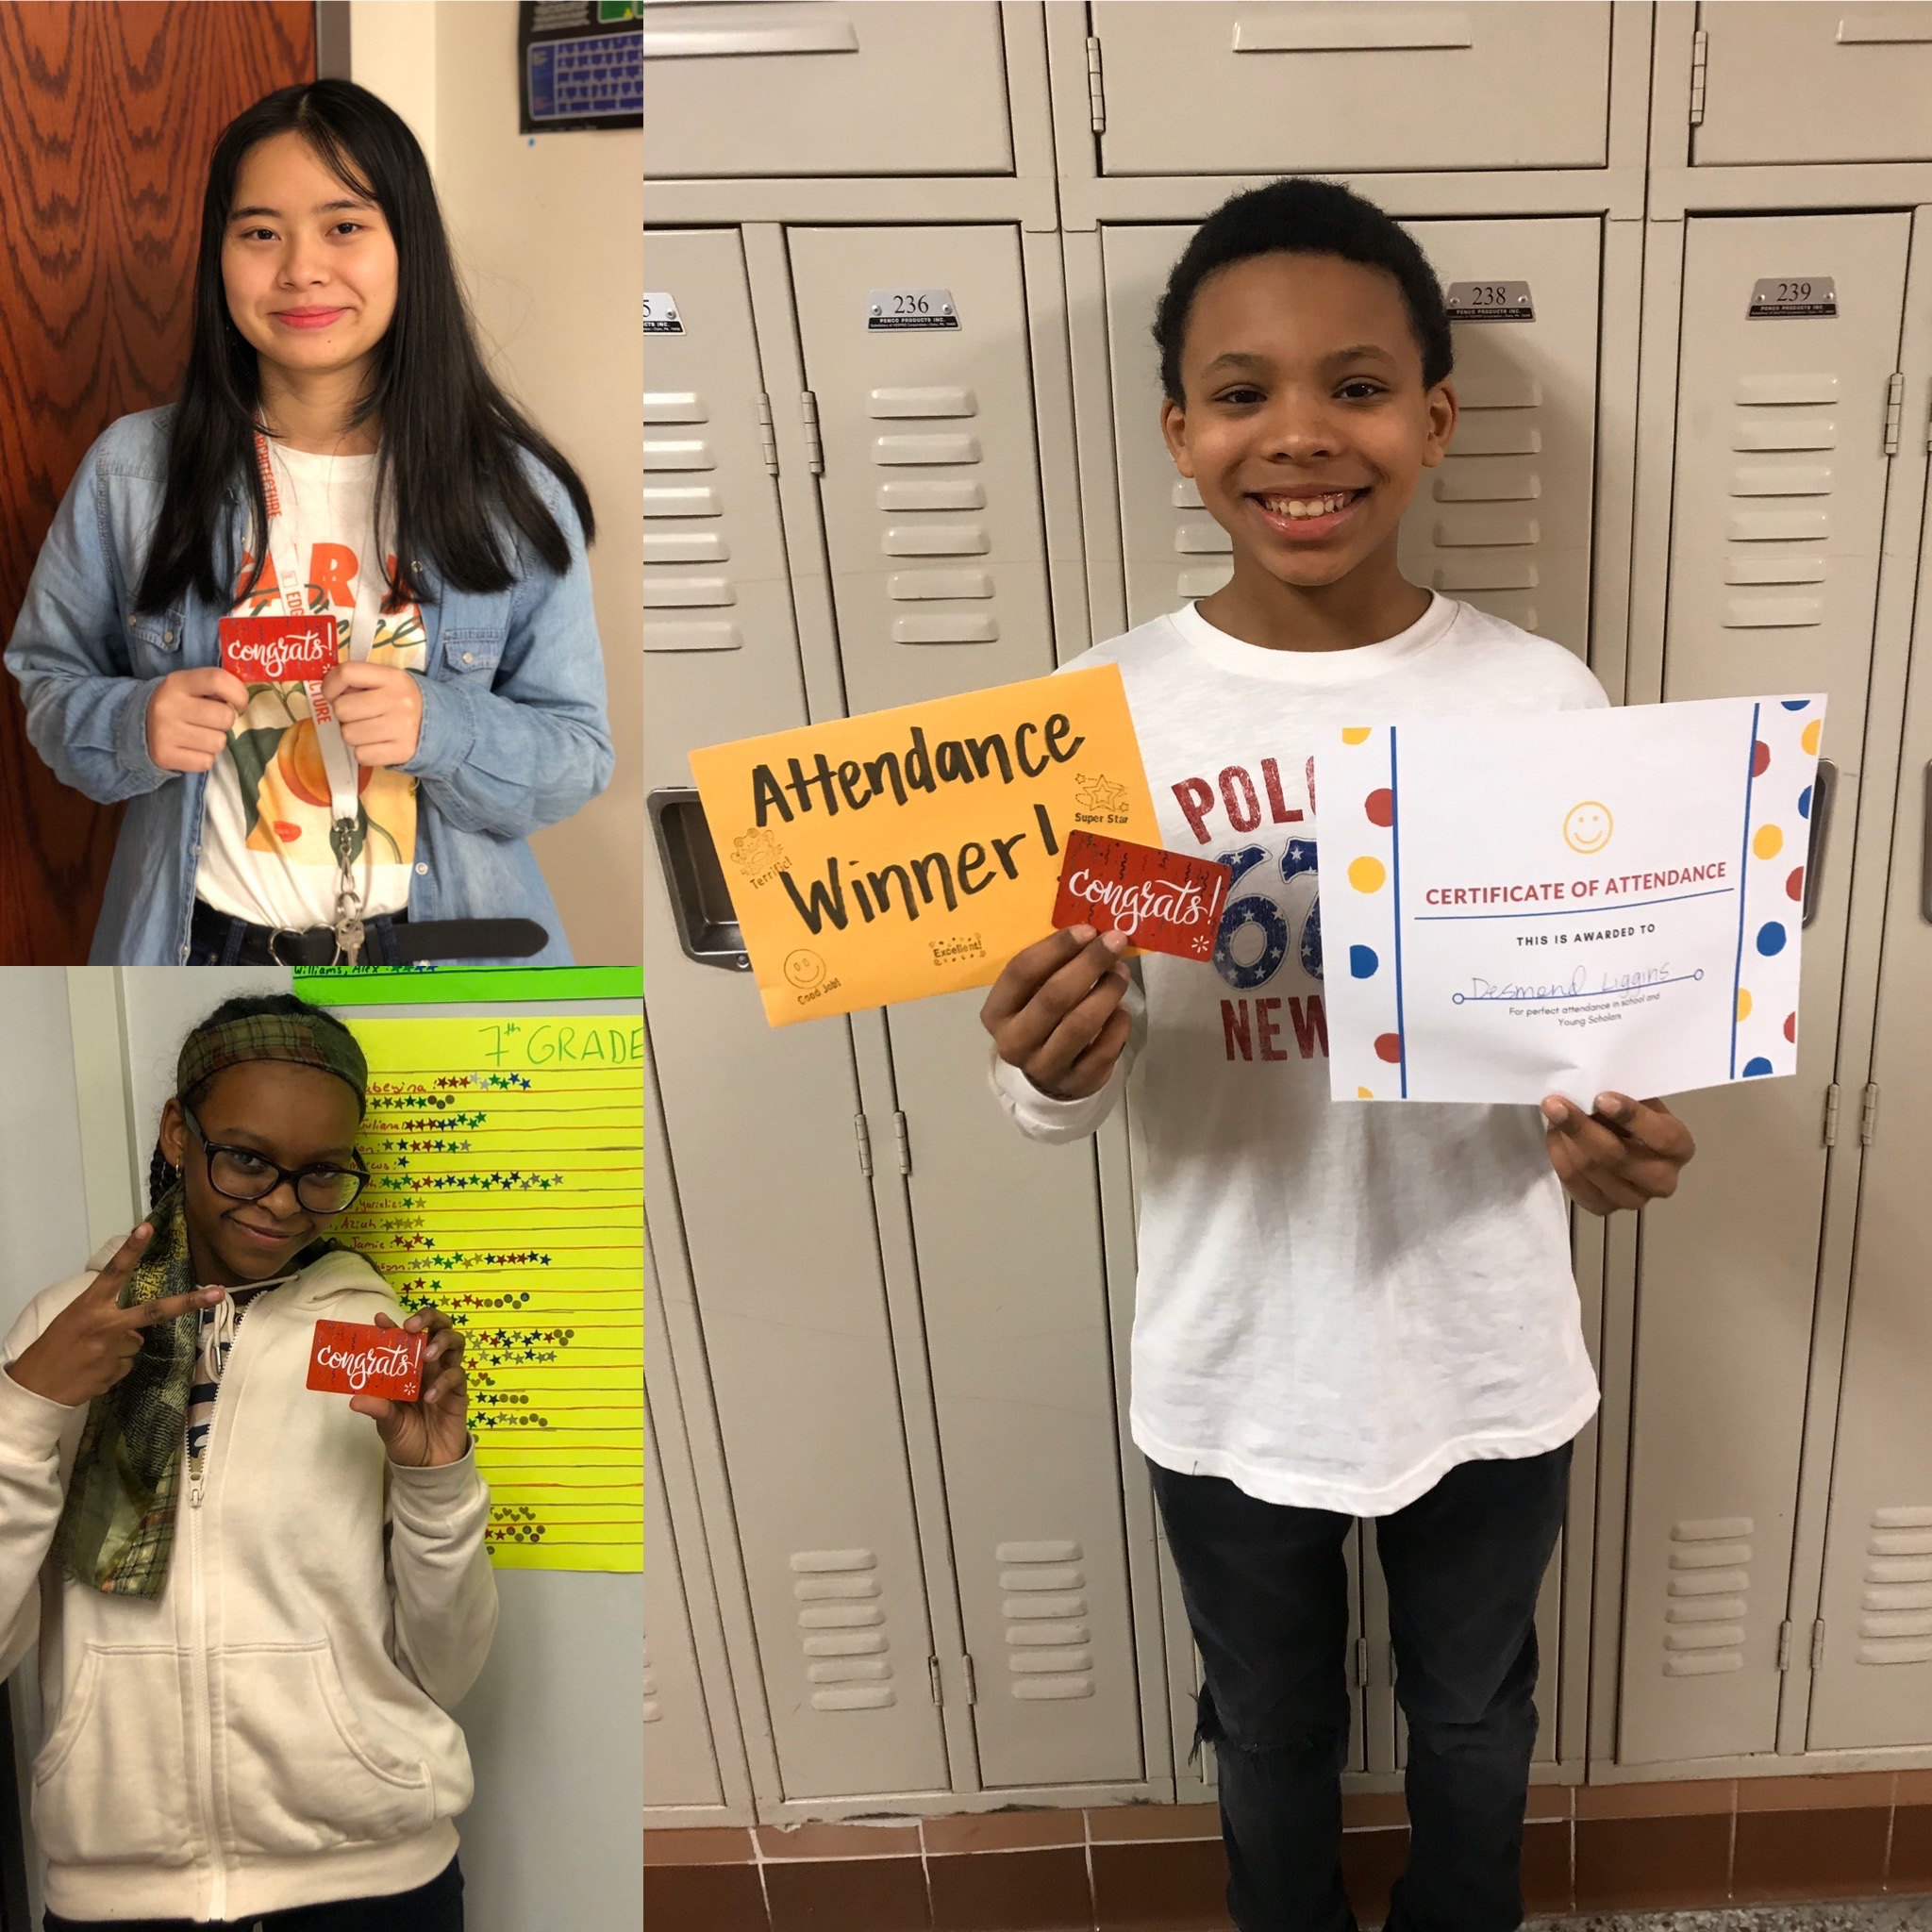 3 students pose with their Target Gift cards rewarding good attendance